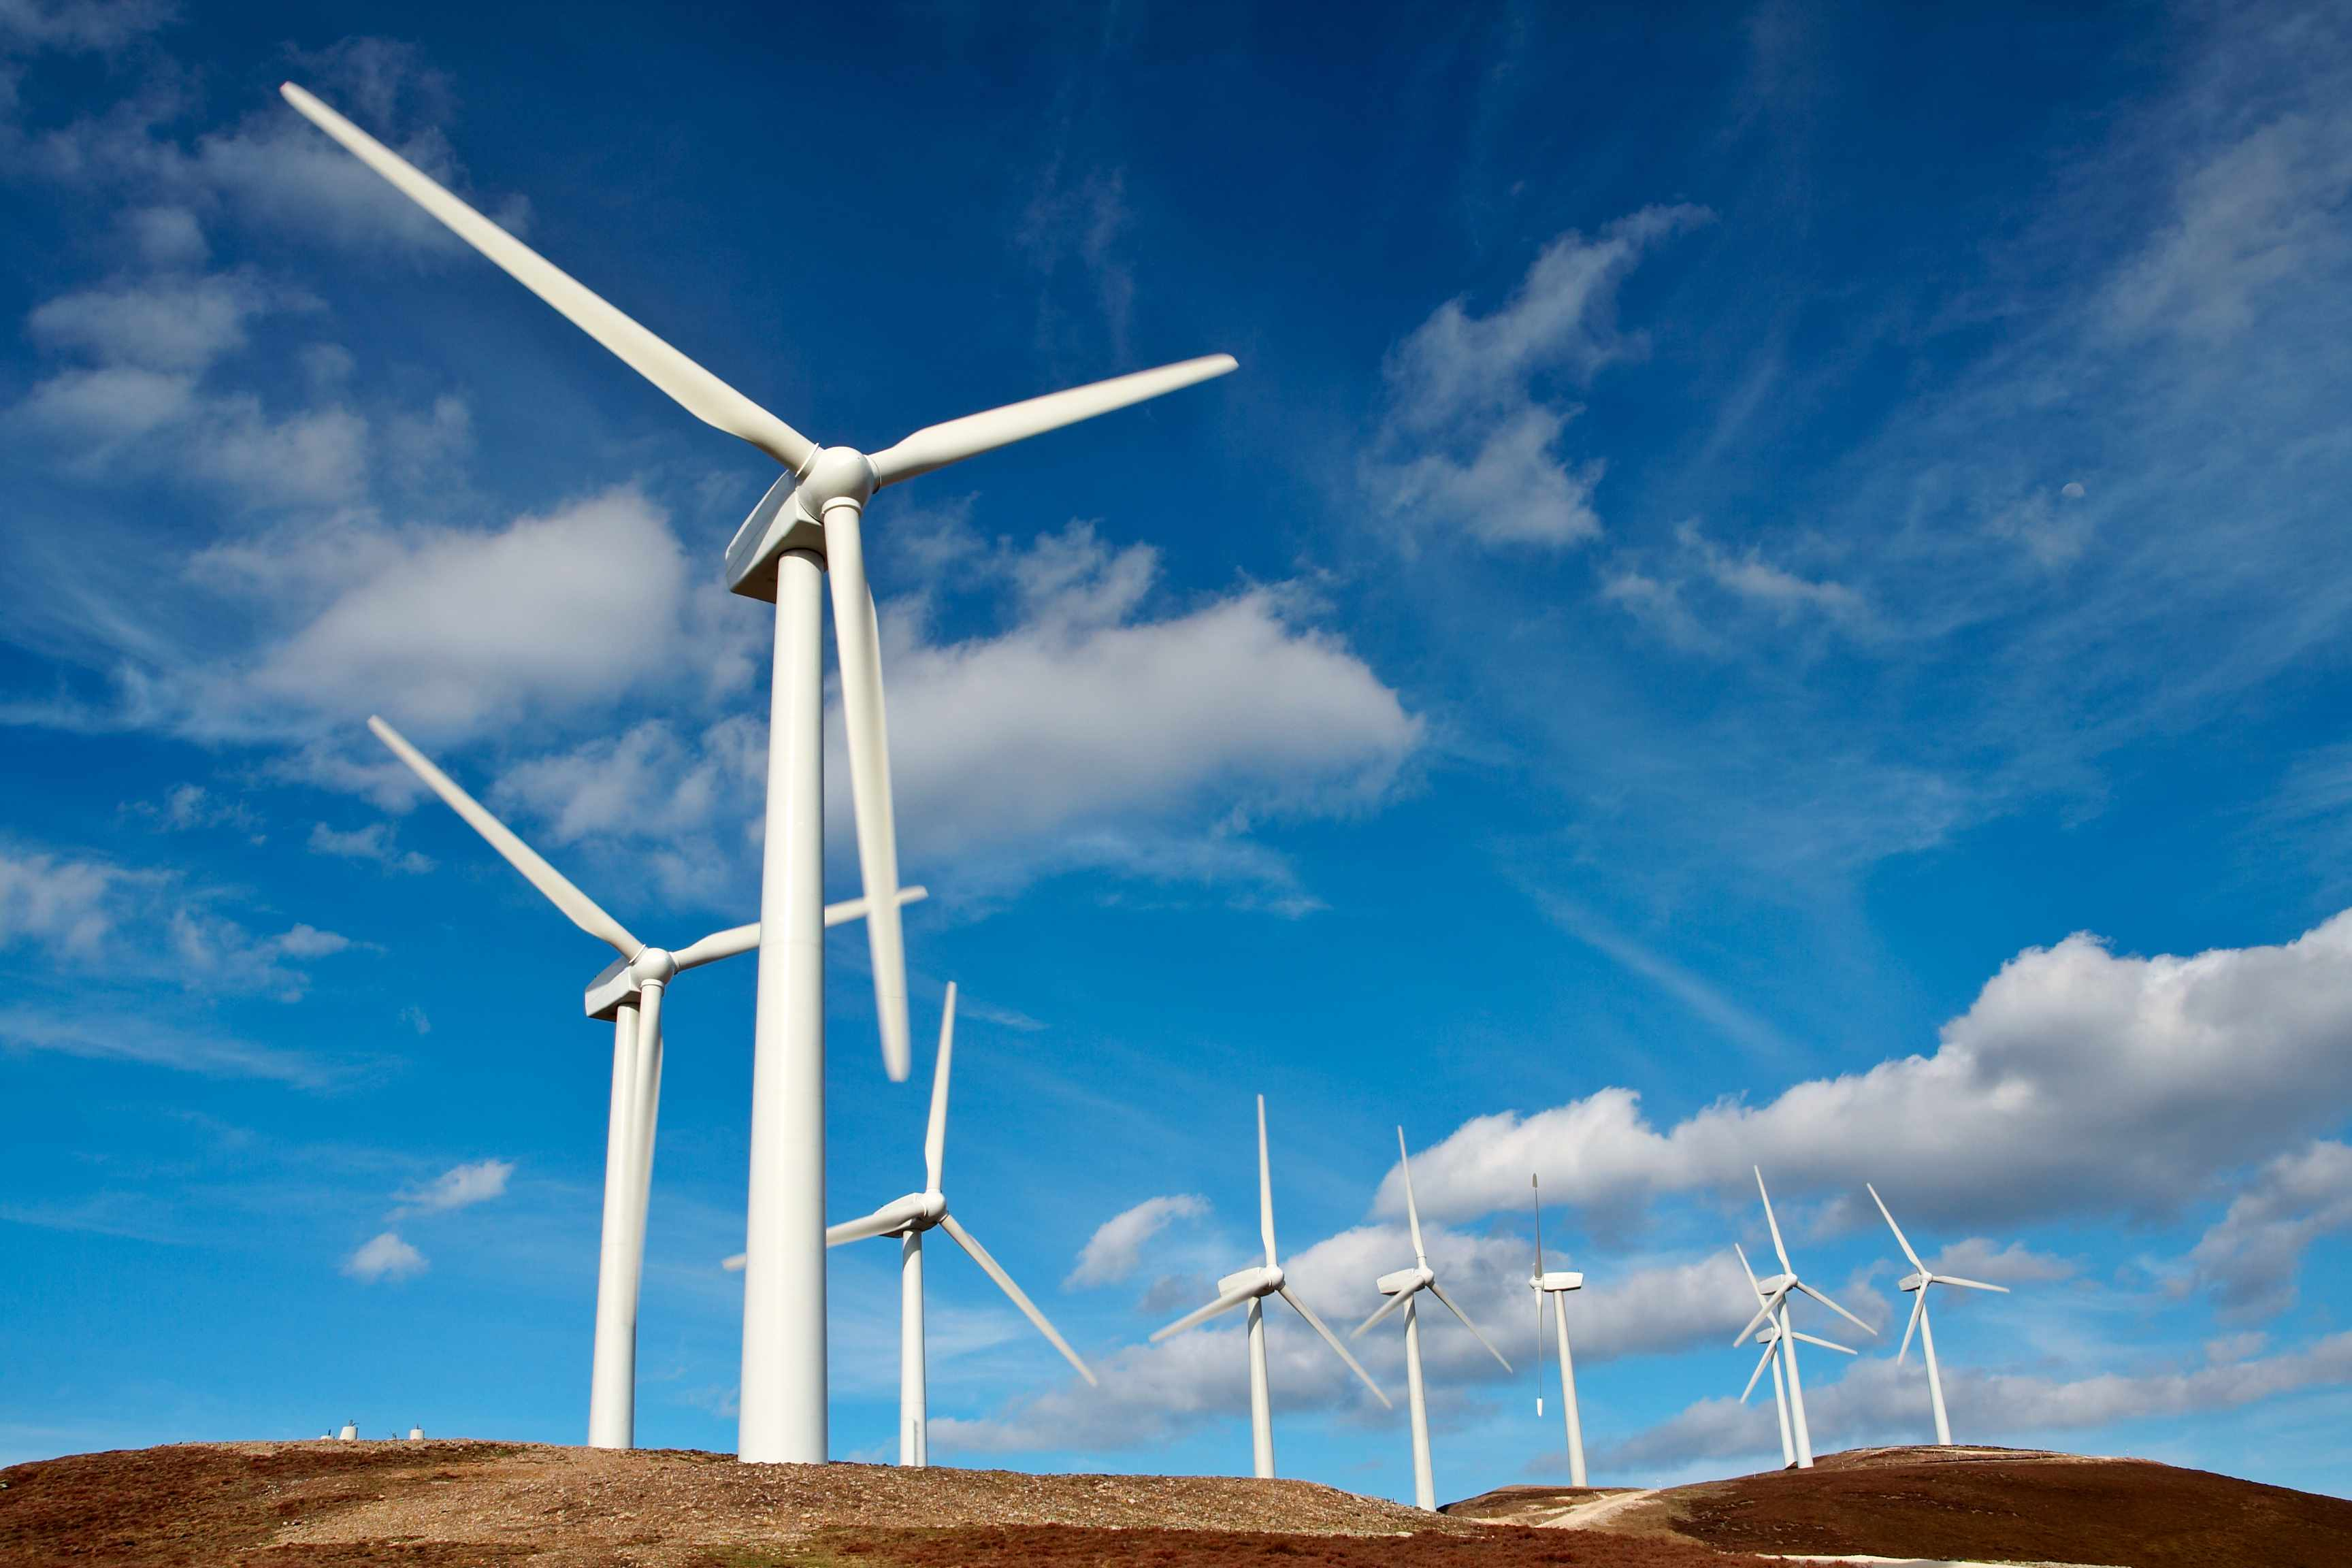 How many wind turbines would be needed to power the whole of the UK? © Getty Images